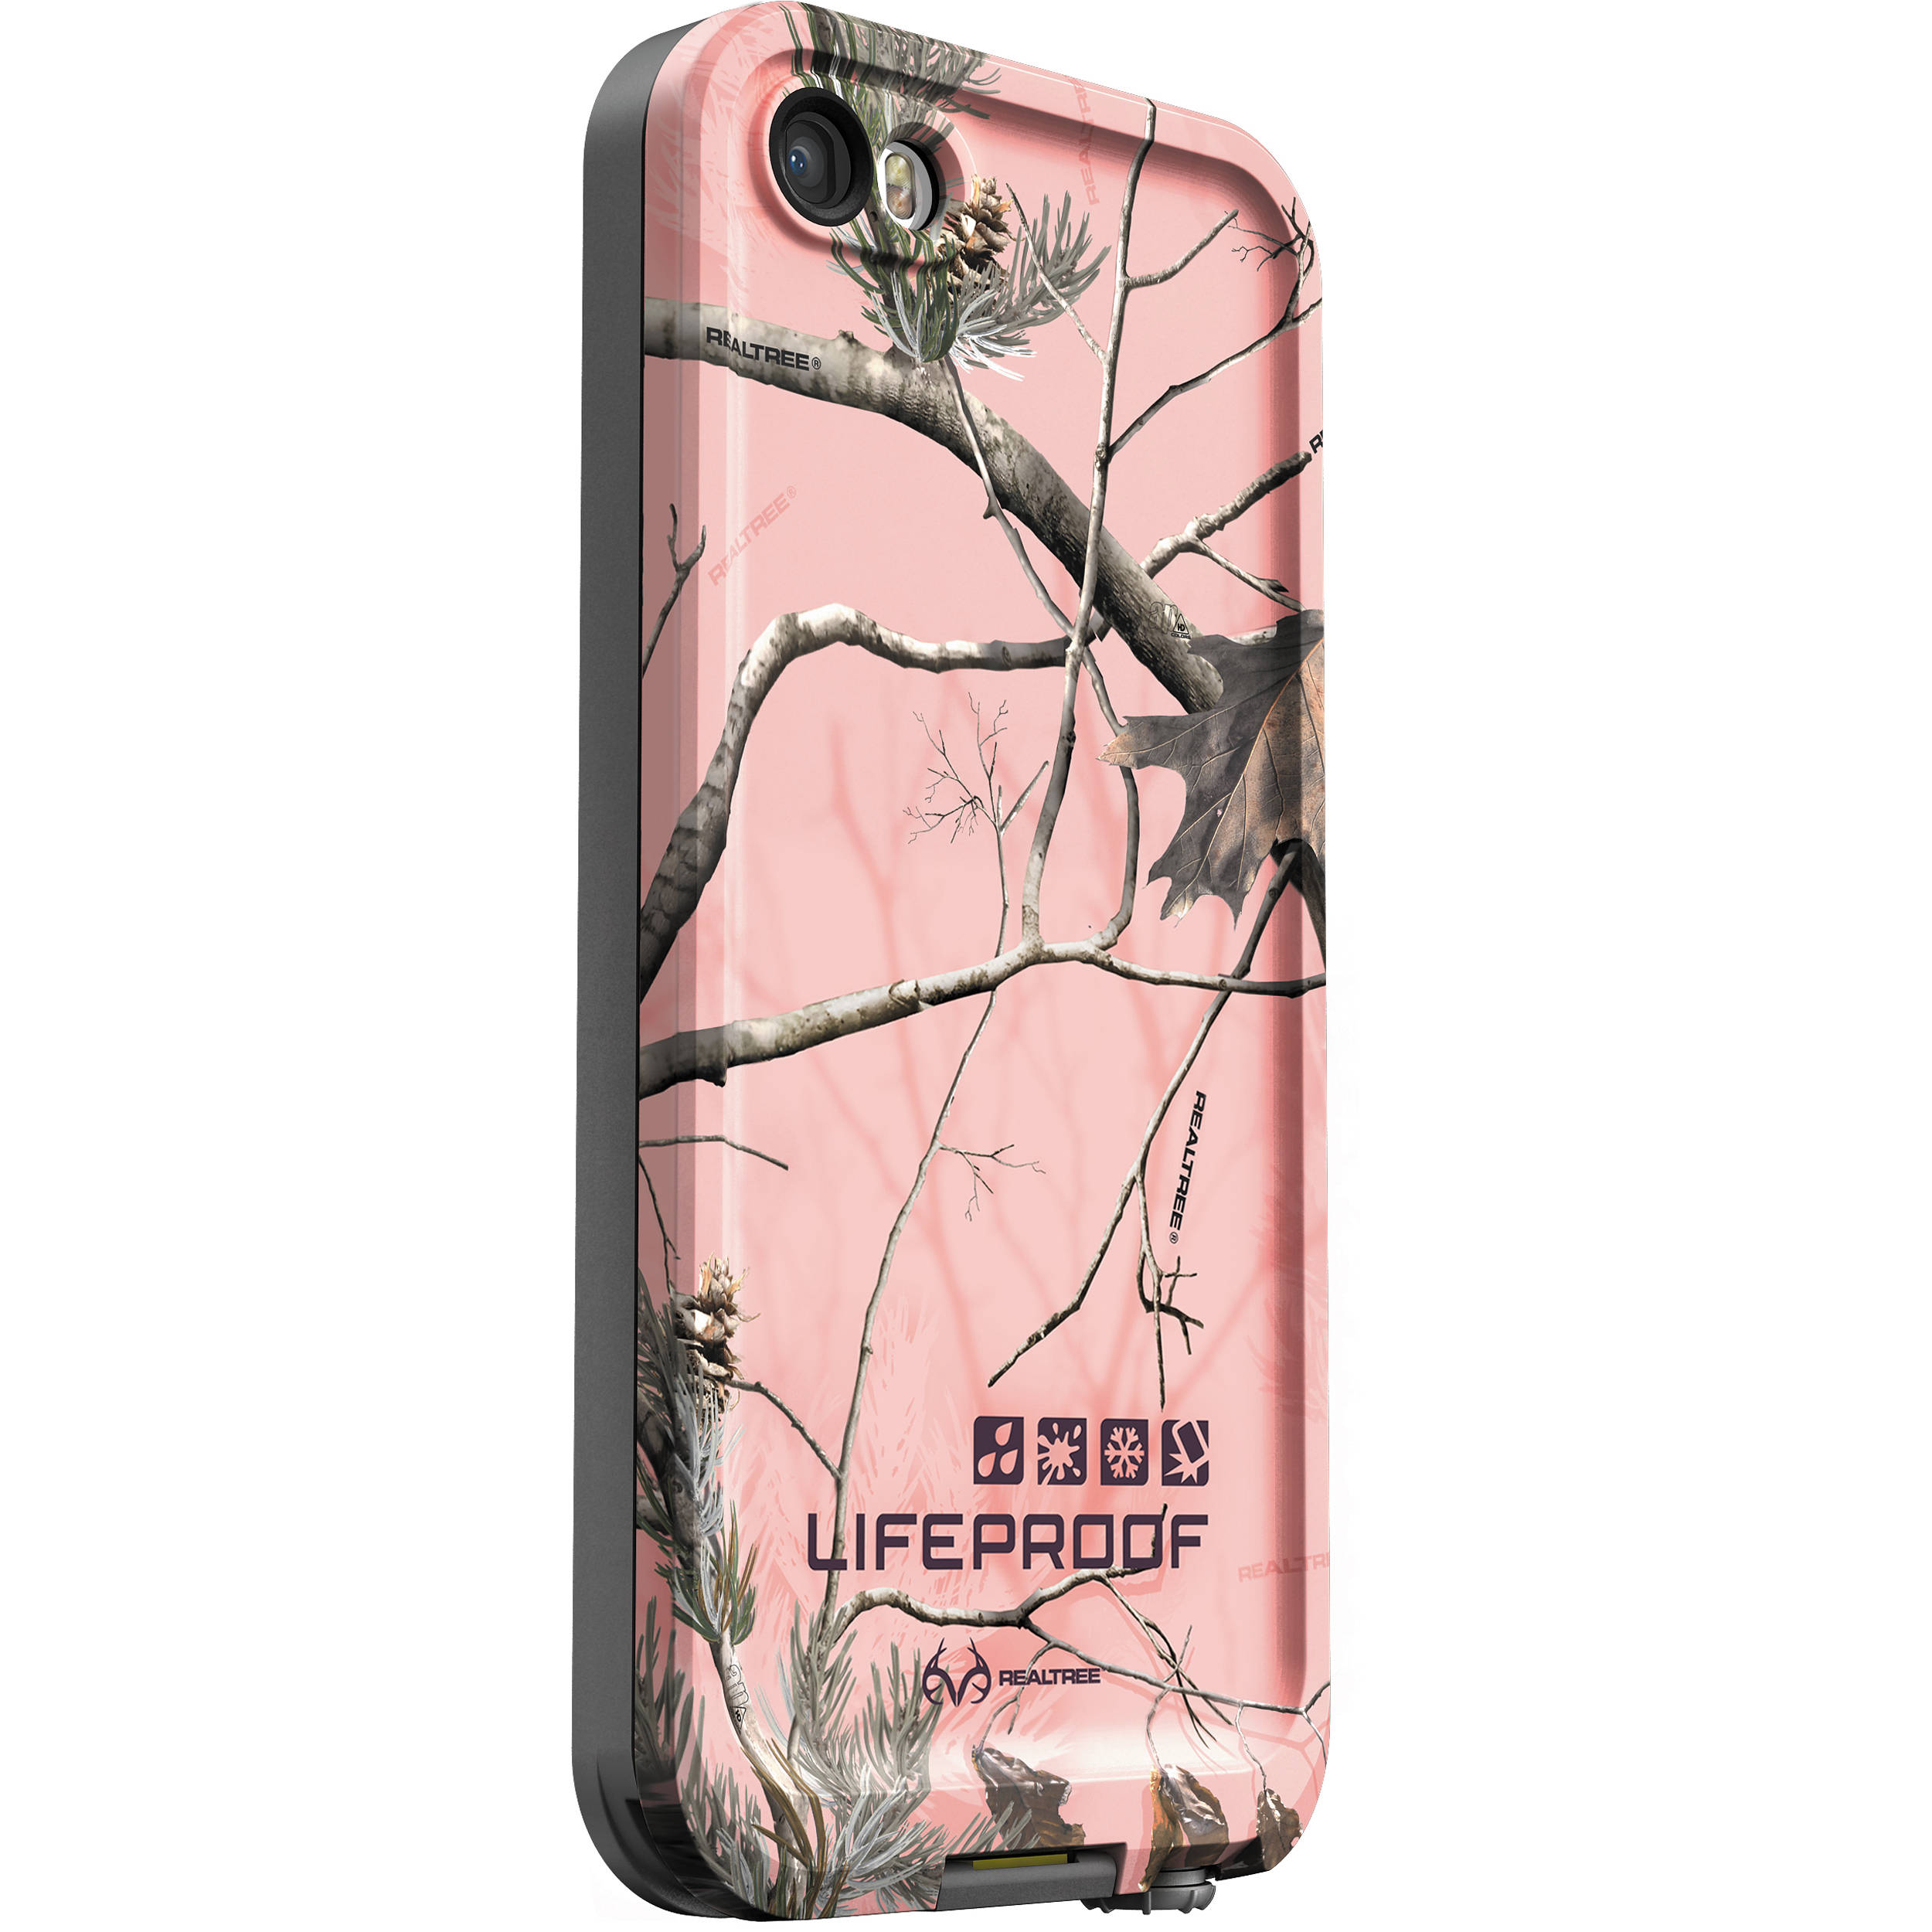 TOP Eyes Move Case skin for iphone 5 5s SE 6 6s plus